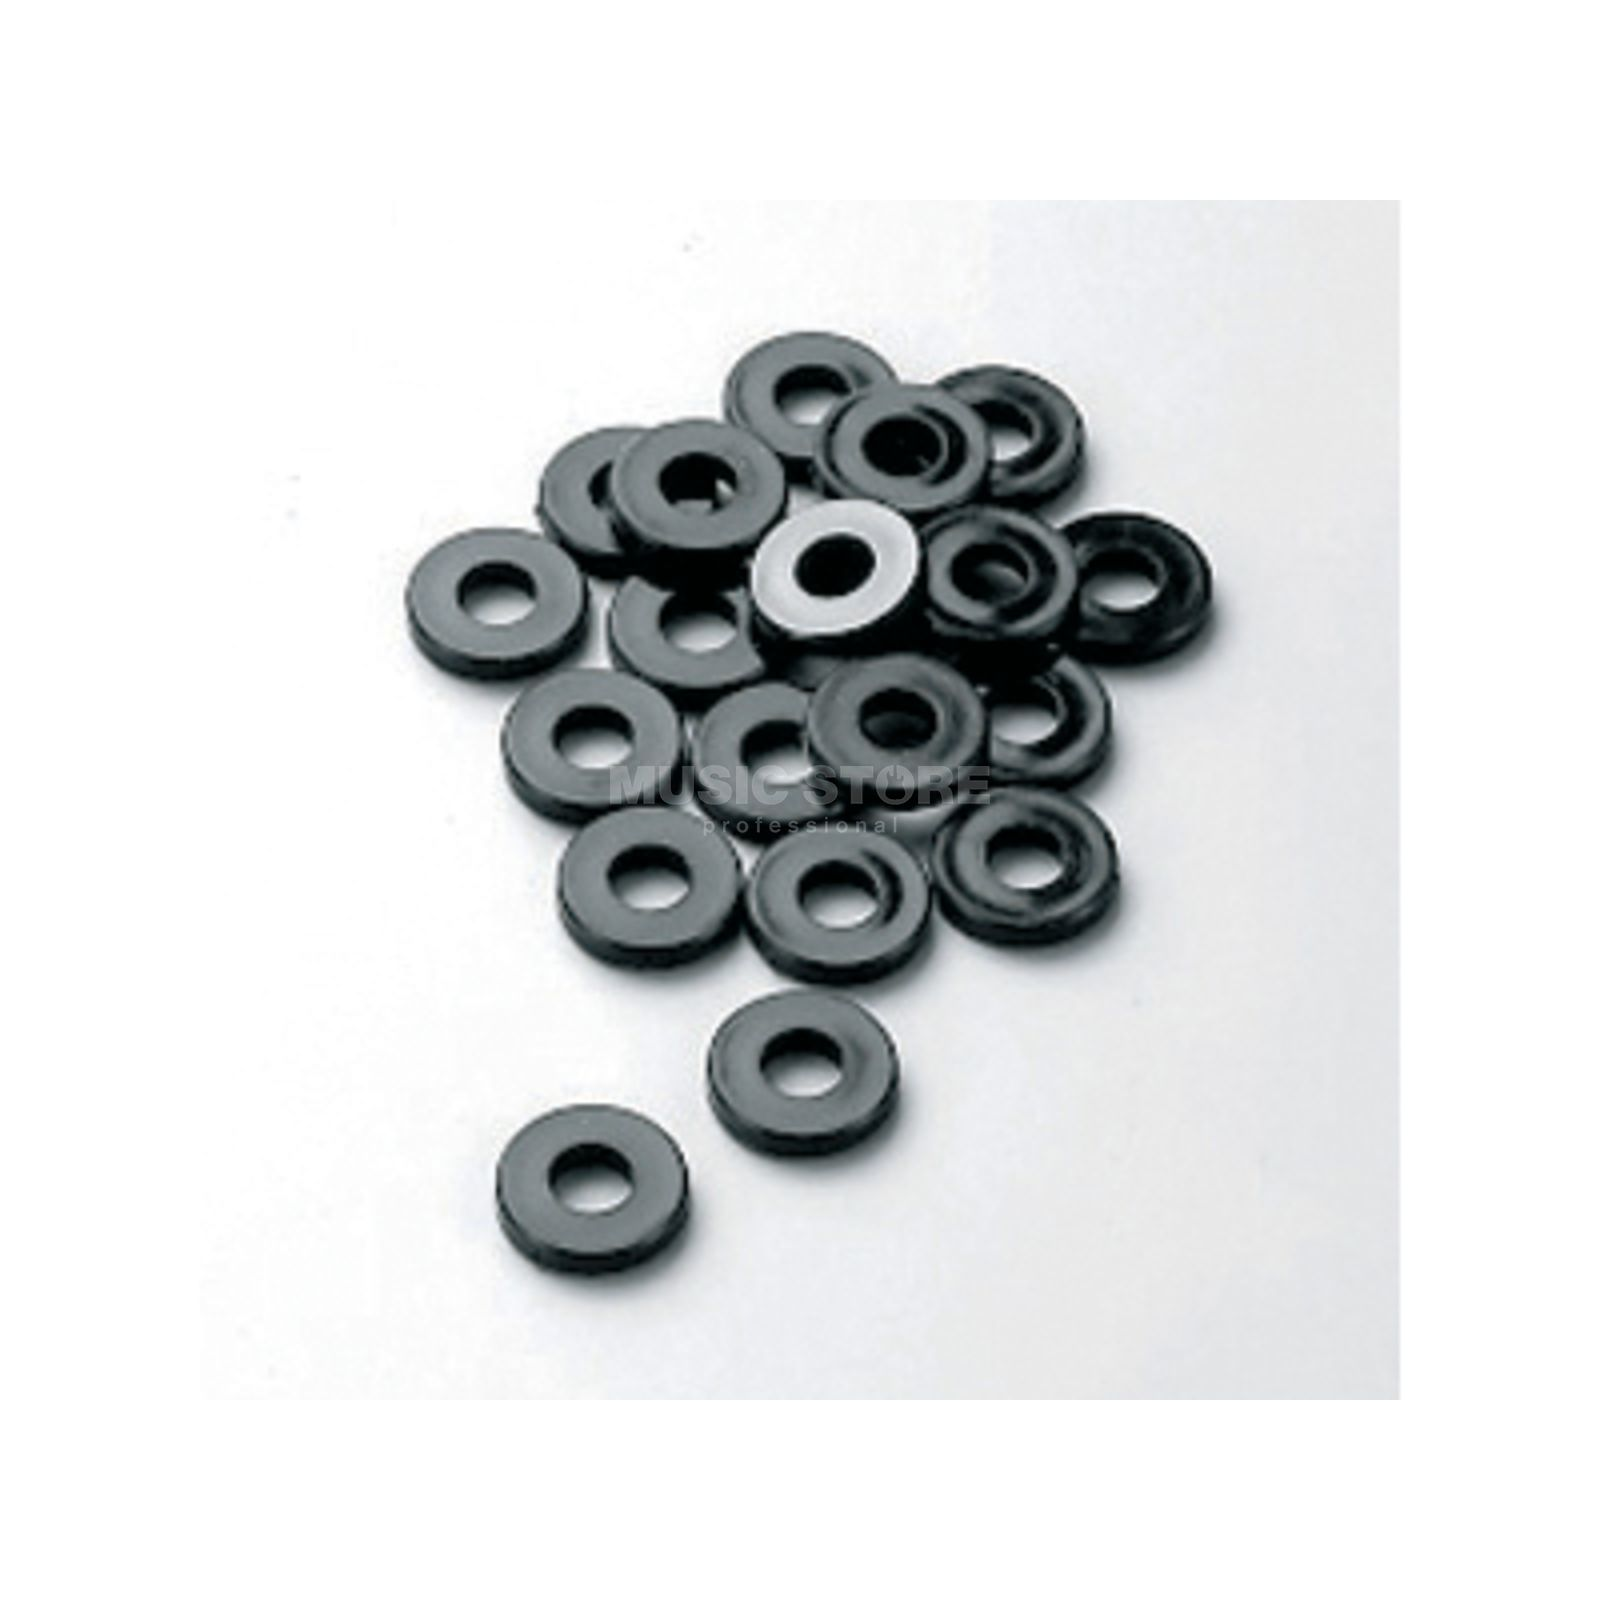 Tama Washers PW620, nylon, 20 pcs Product Image